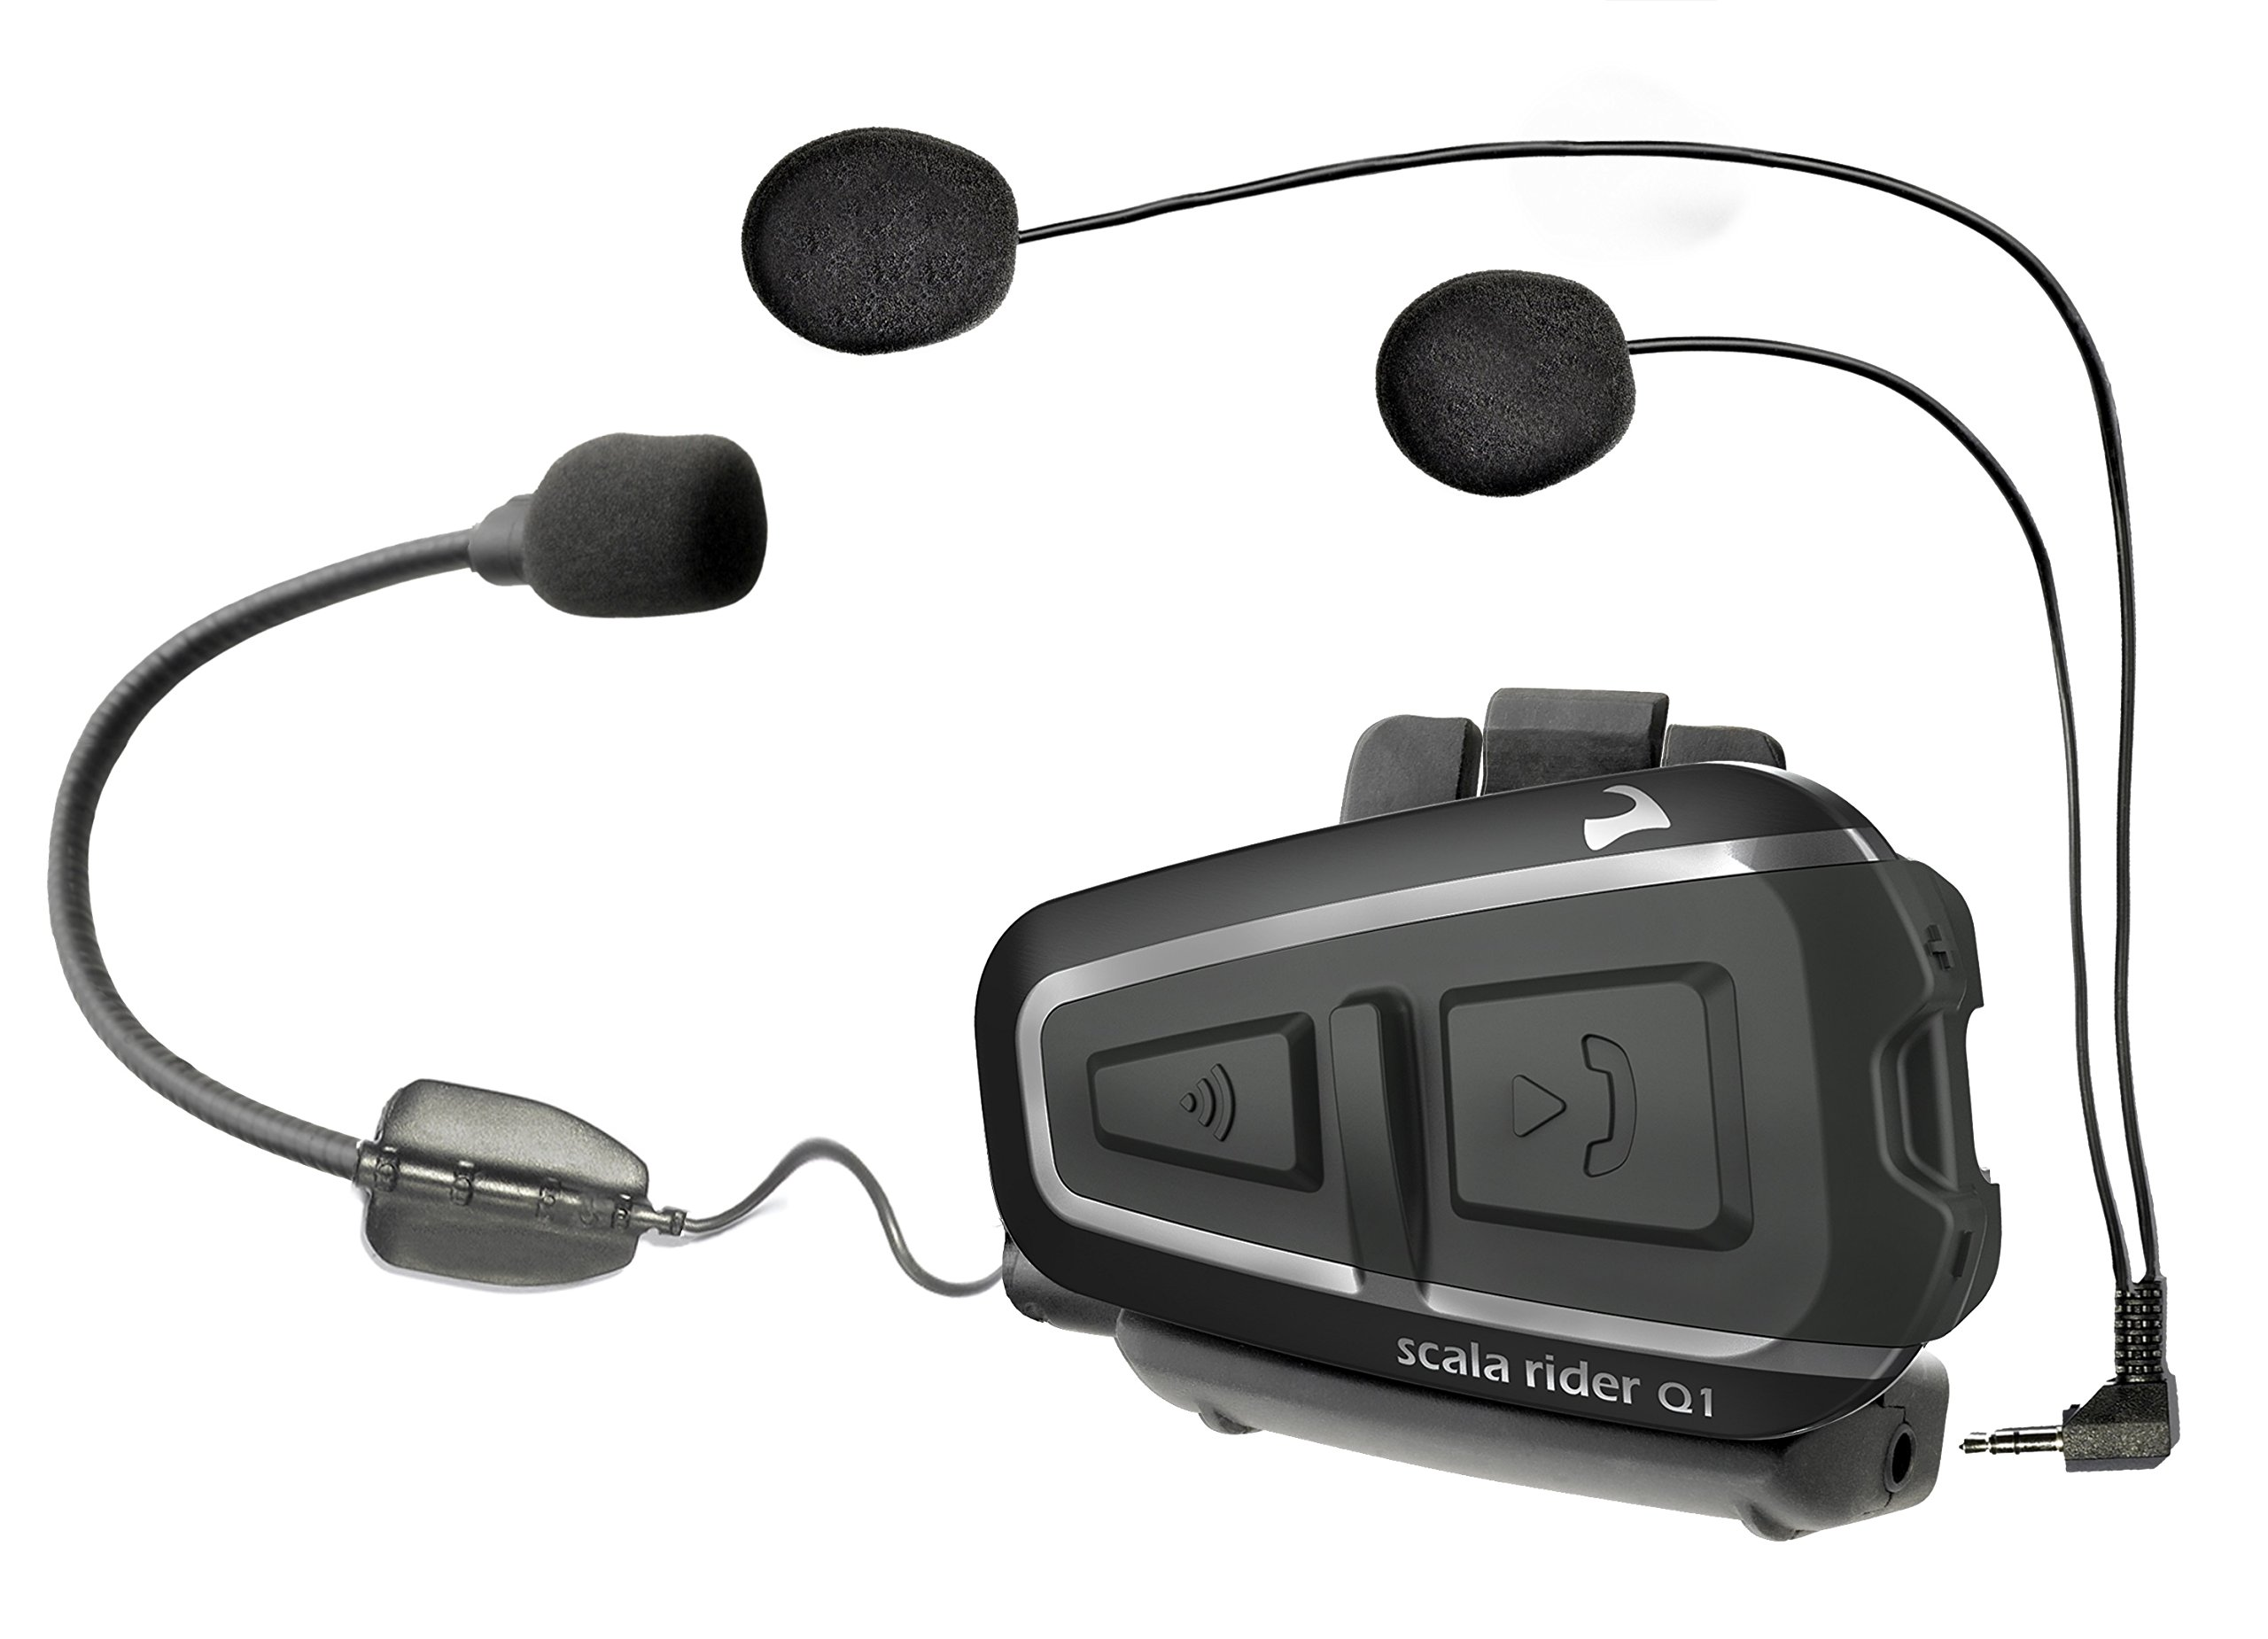 Cardo scala rider Q1 Bluetooth Motorcycle Headset and Rider-to-Passenger Communication System, Single Pack (Discontinued by Manufacturer)